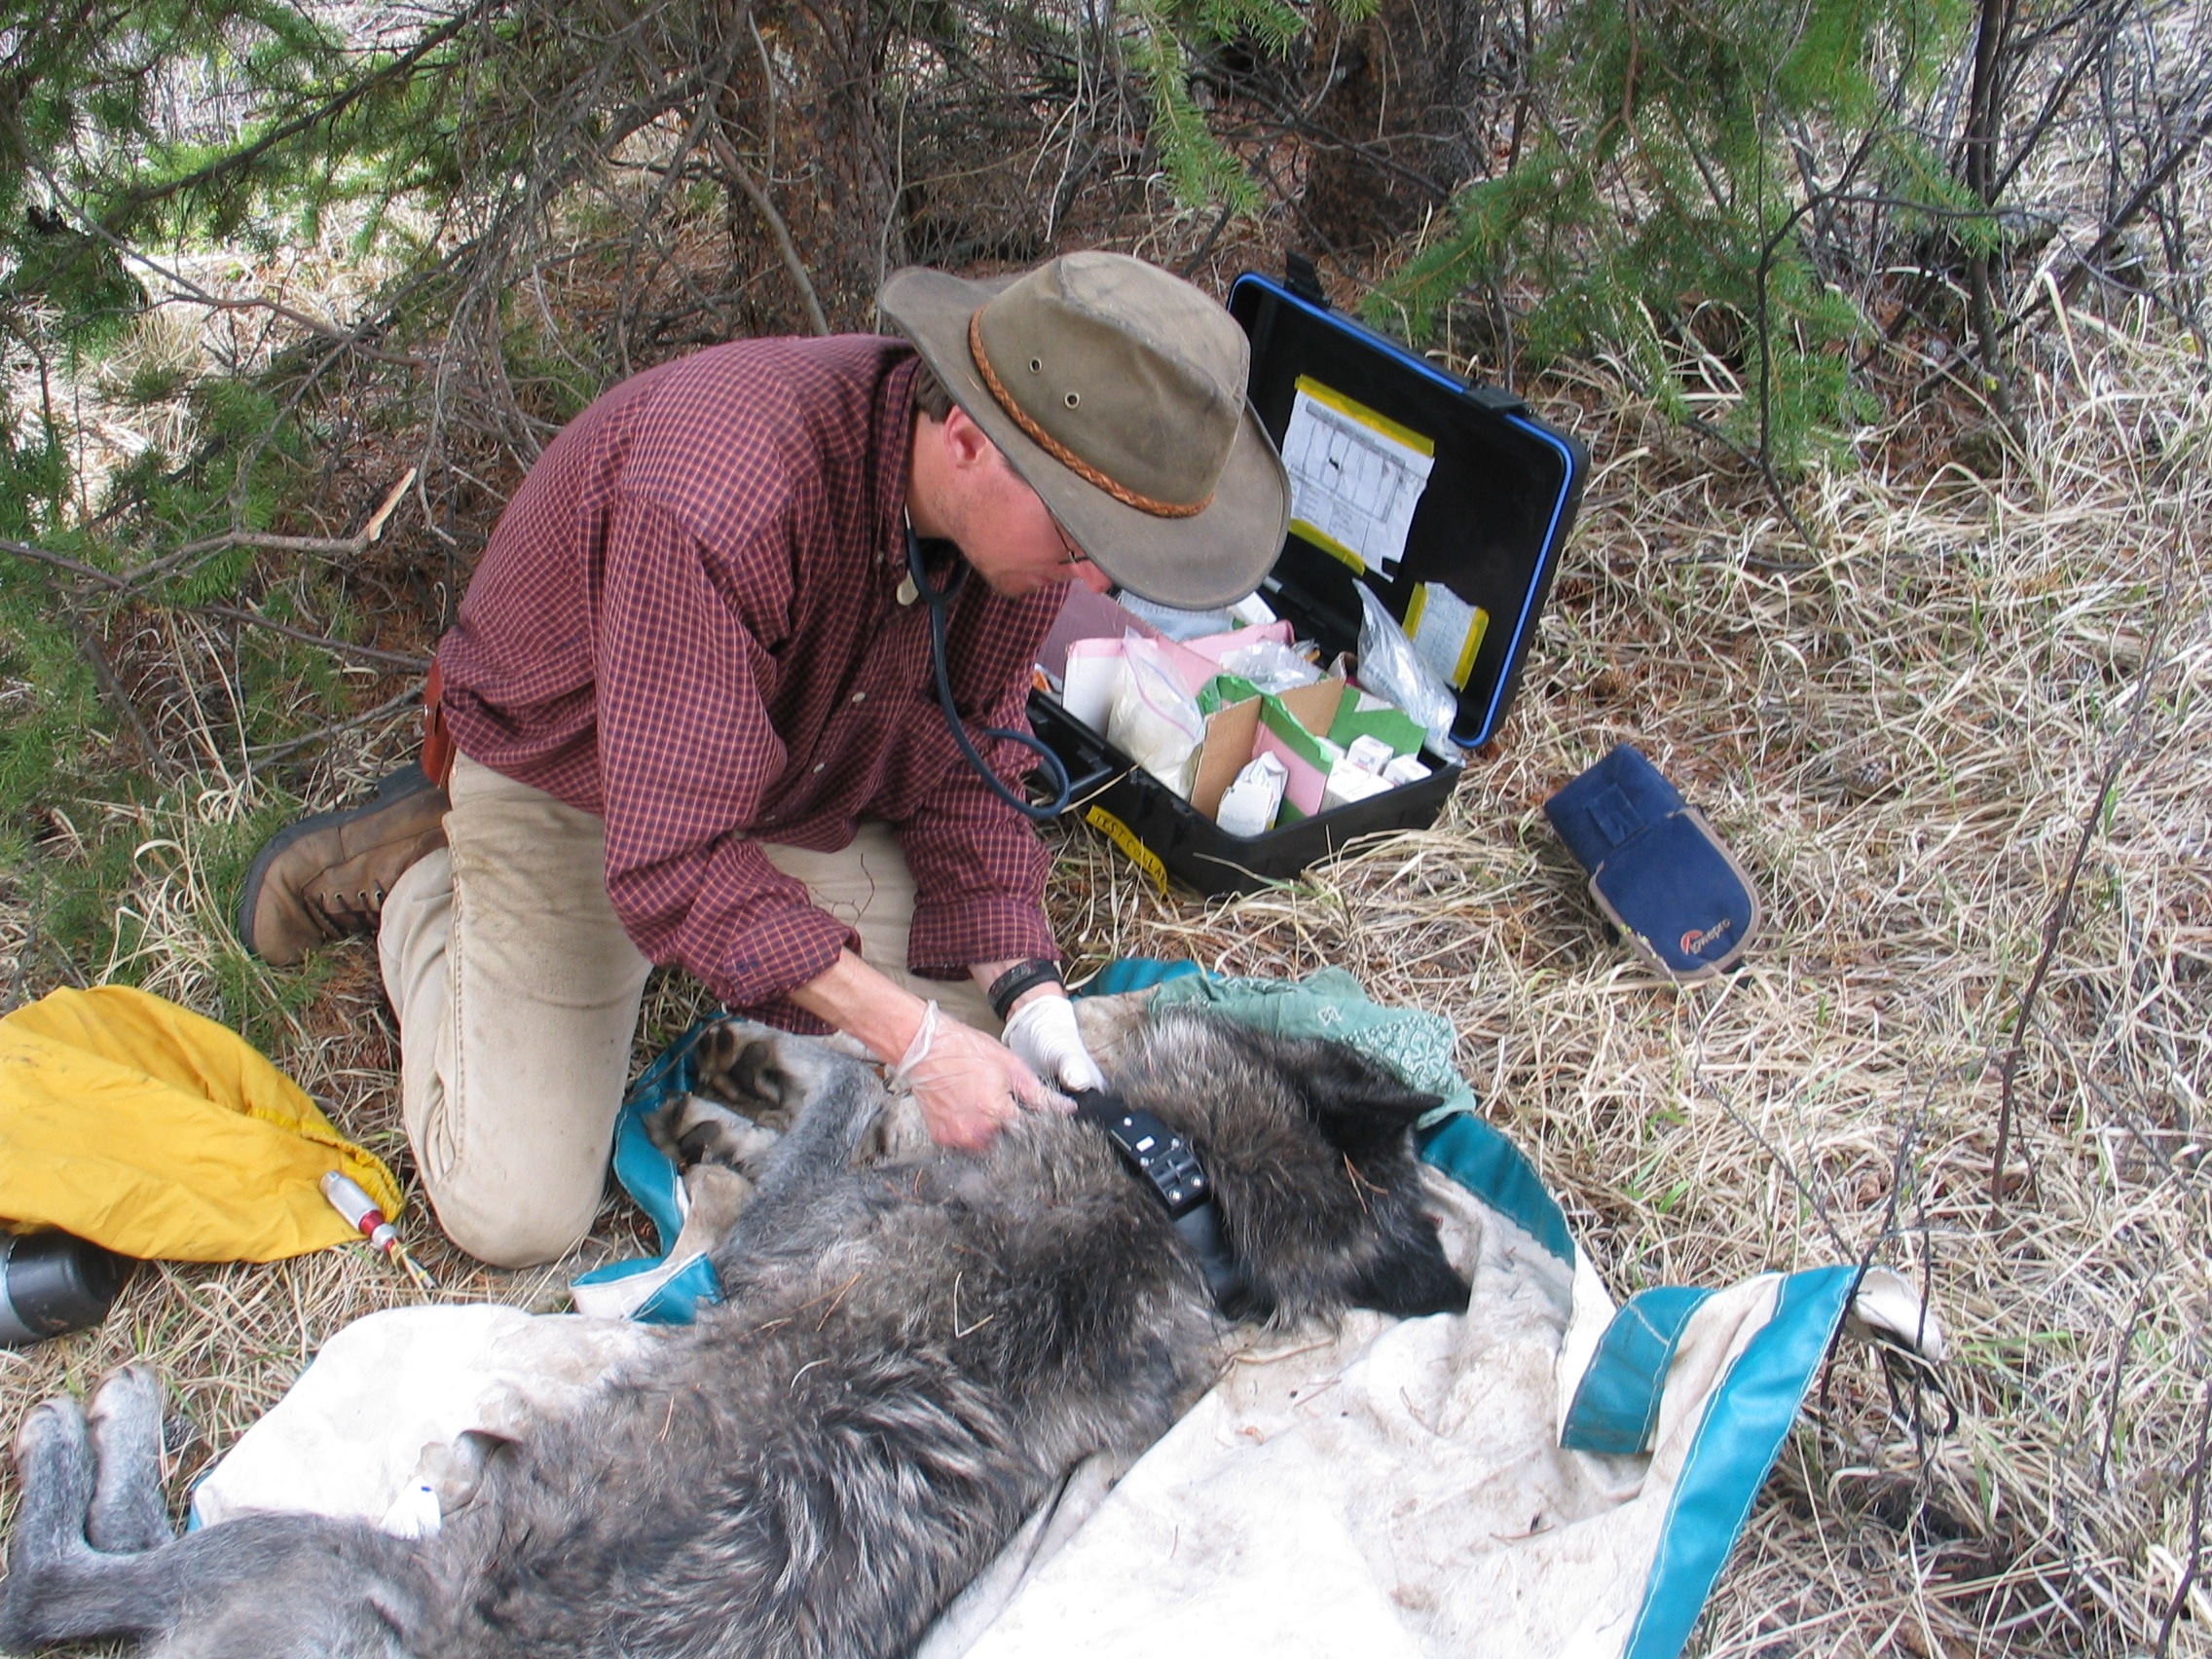 Mark Hebblewhite attaches a new GPS tracking collar to a tranquilized wolf as part of his ongoing research.